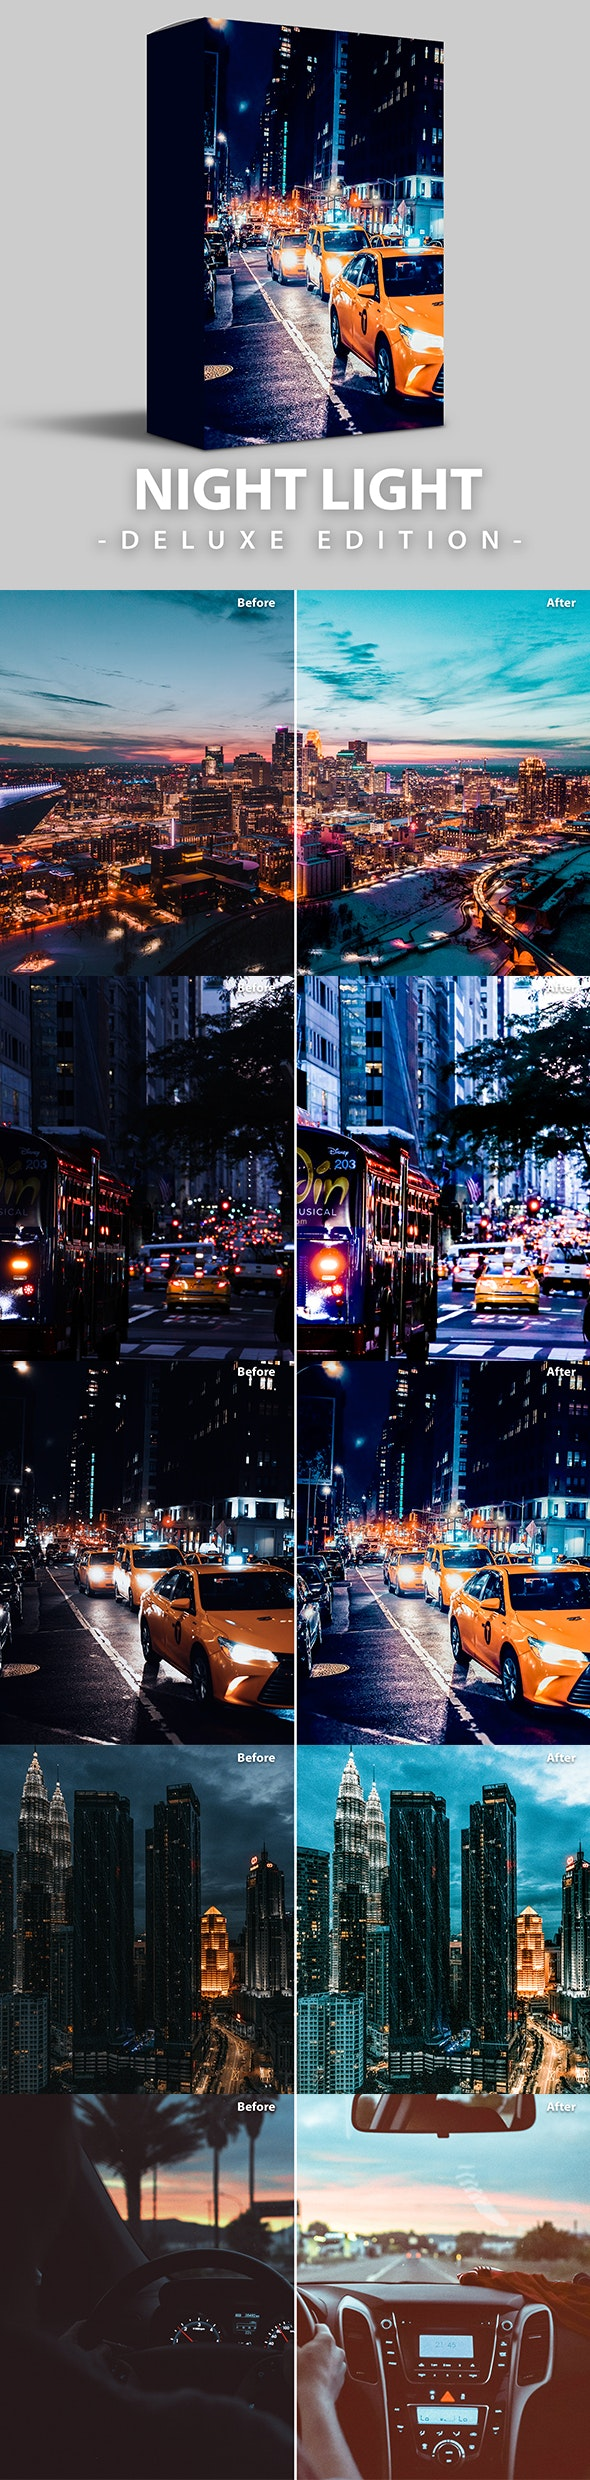 Night Light | Deluxe Edition for Mobile and Desktop - Lightroom Presets Add-ons